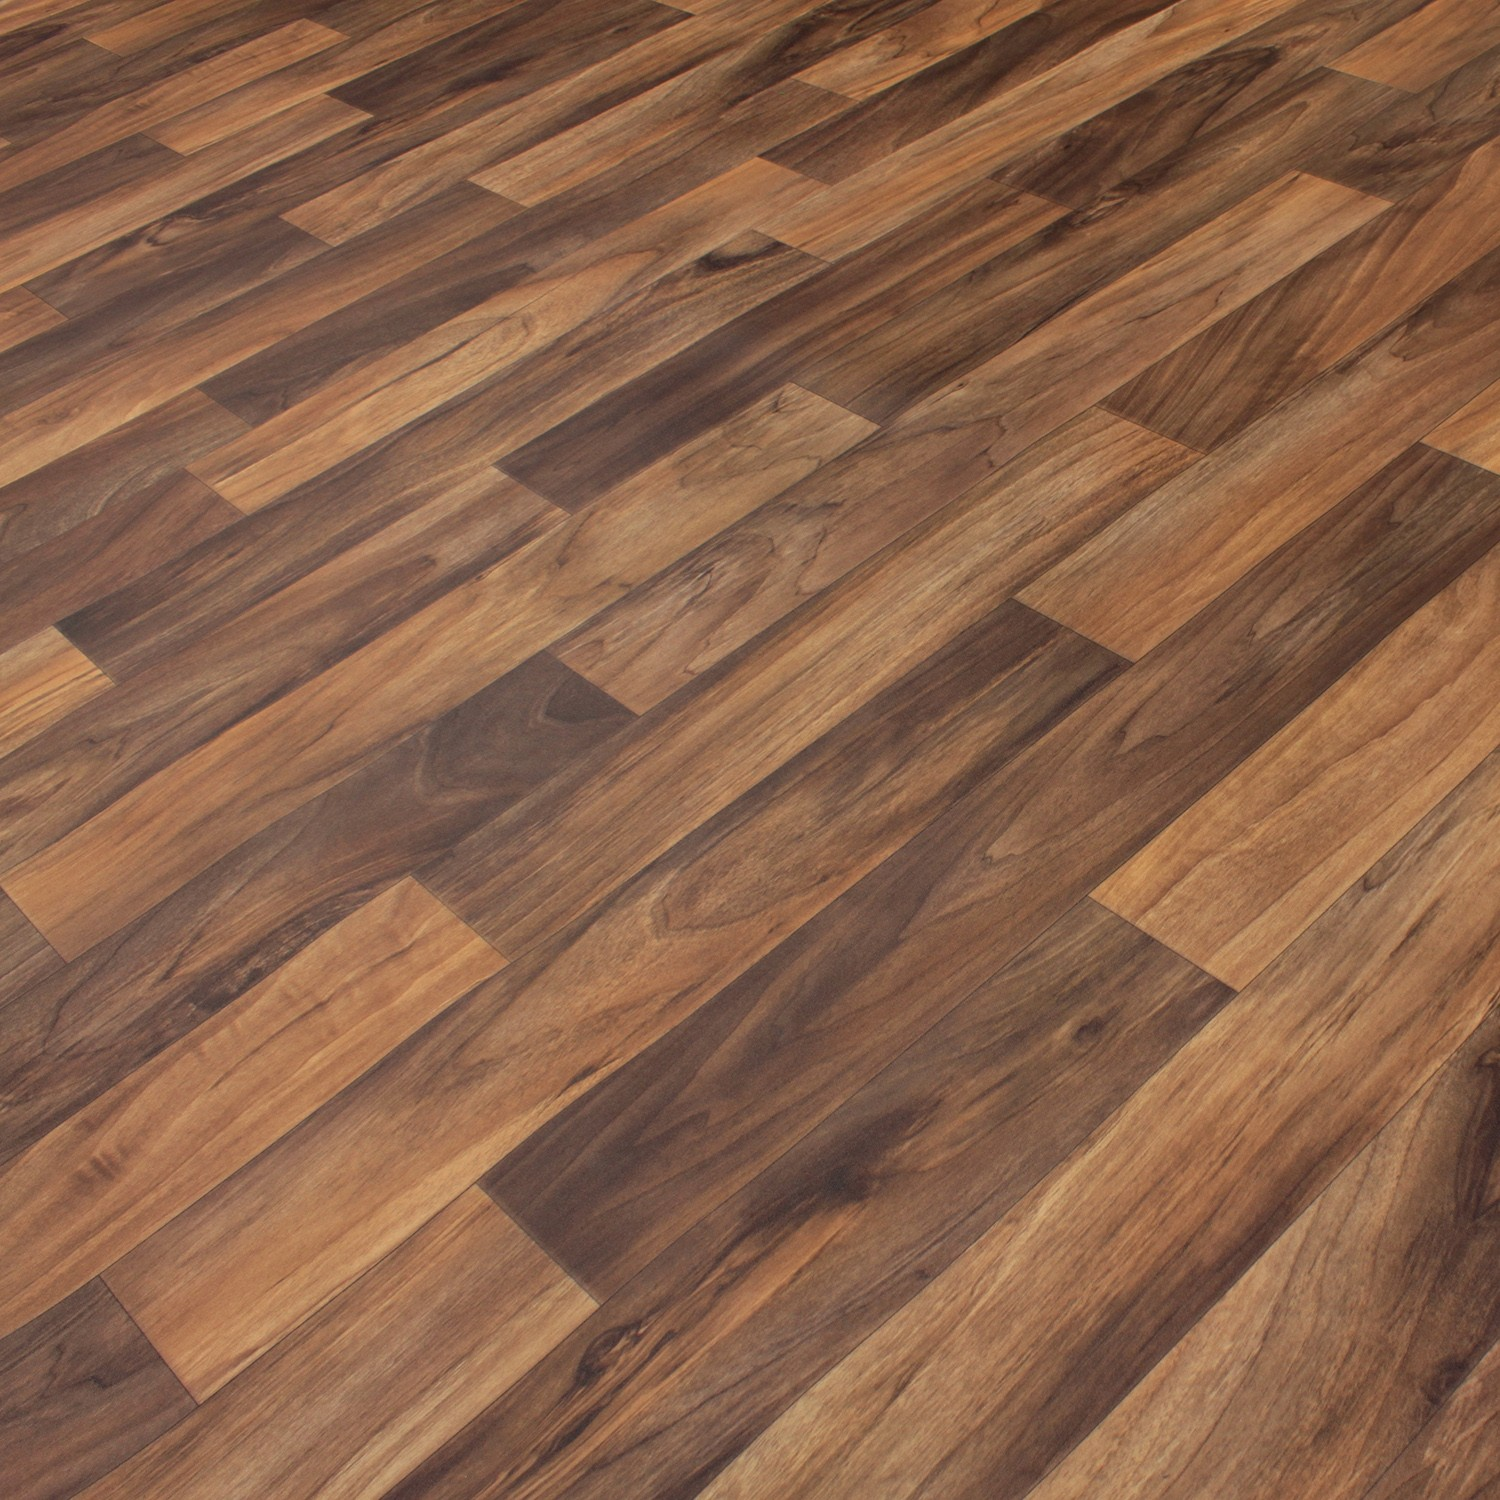 2m wide high quality vinyl flooring dark wood designs